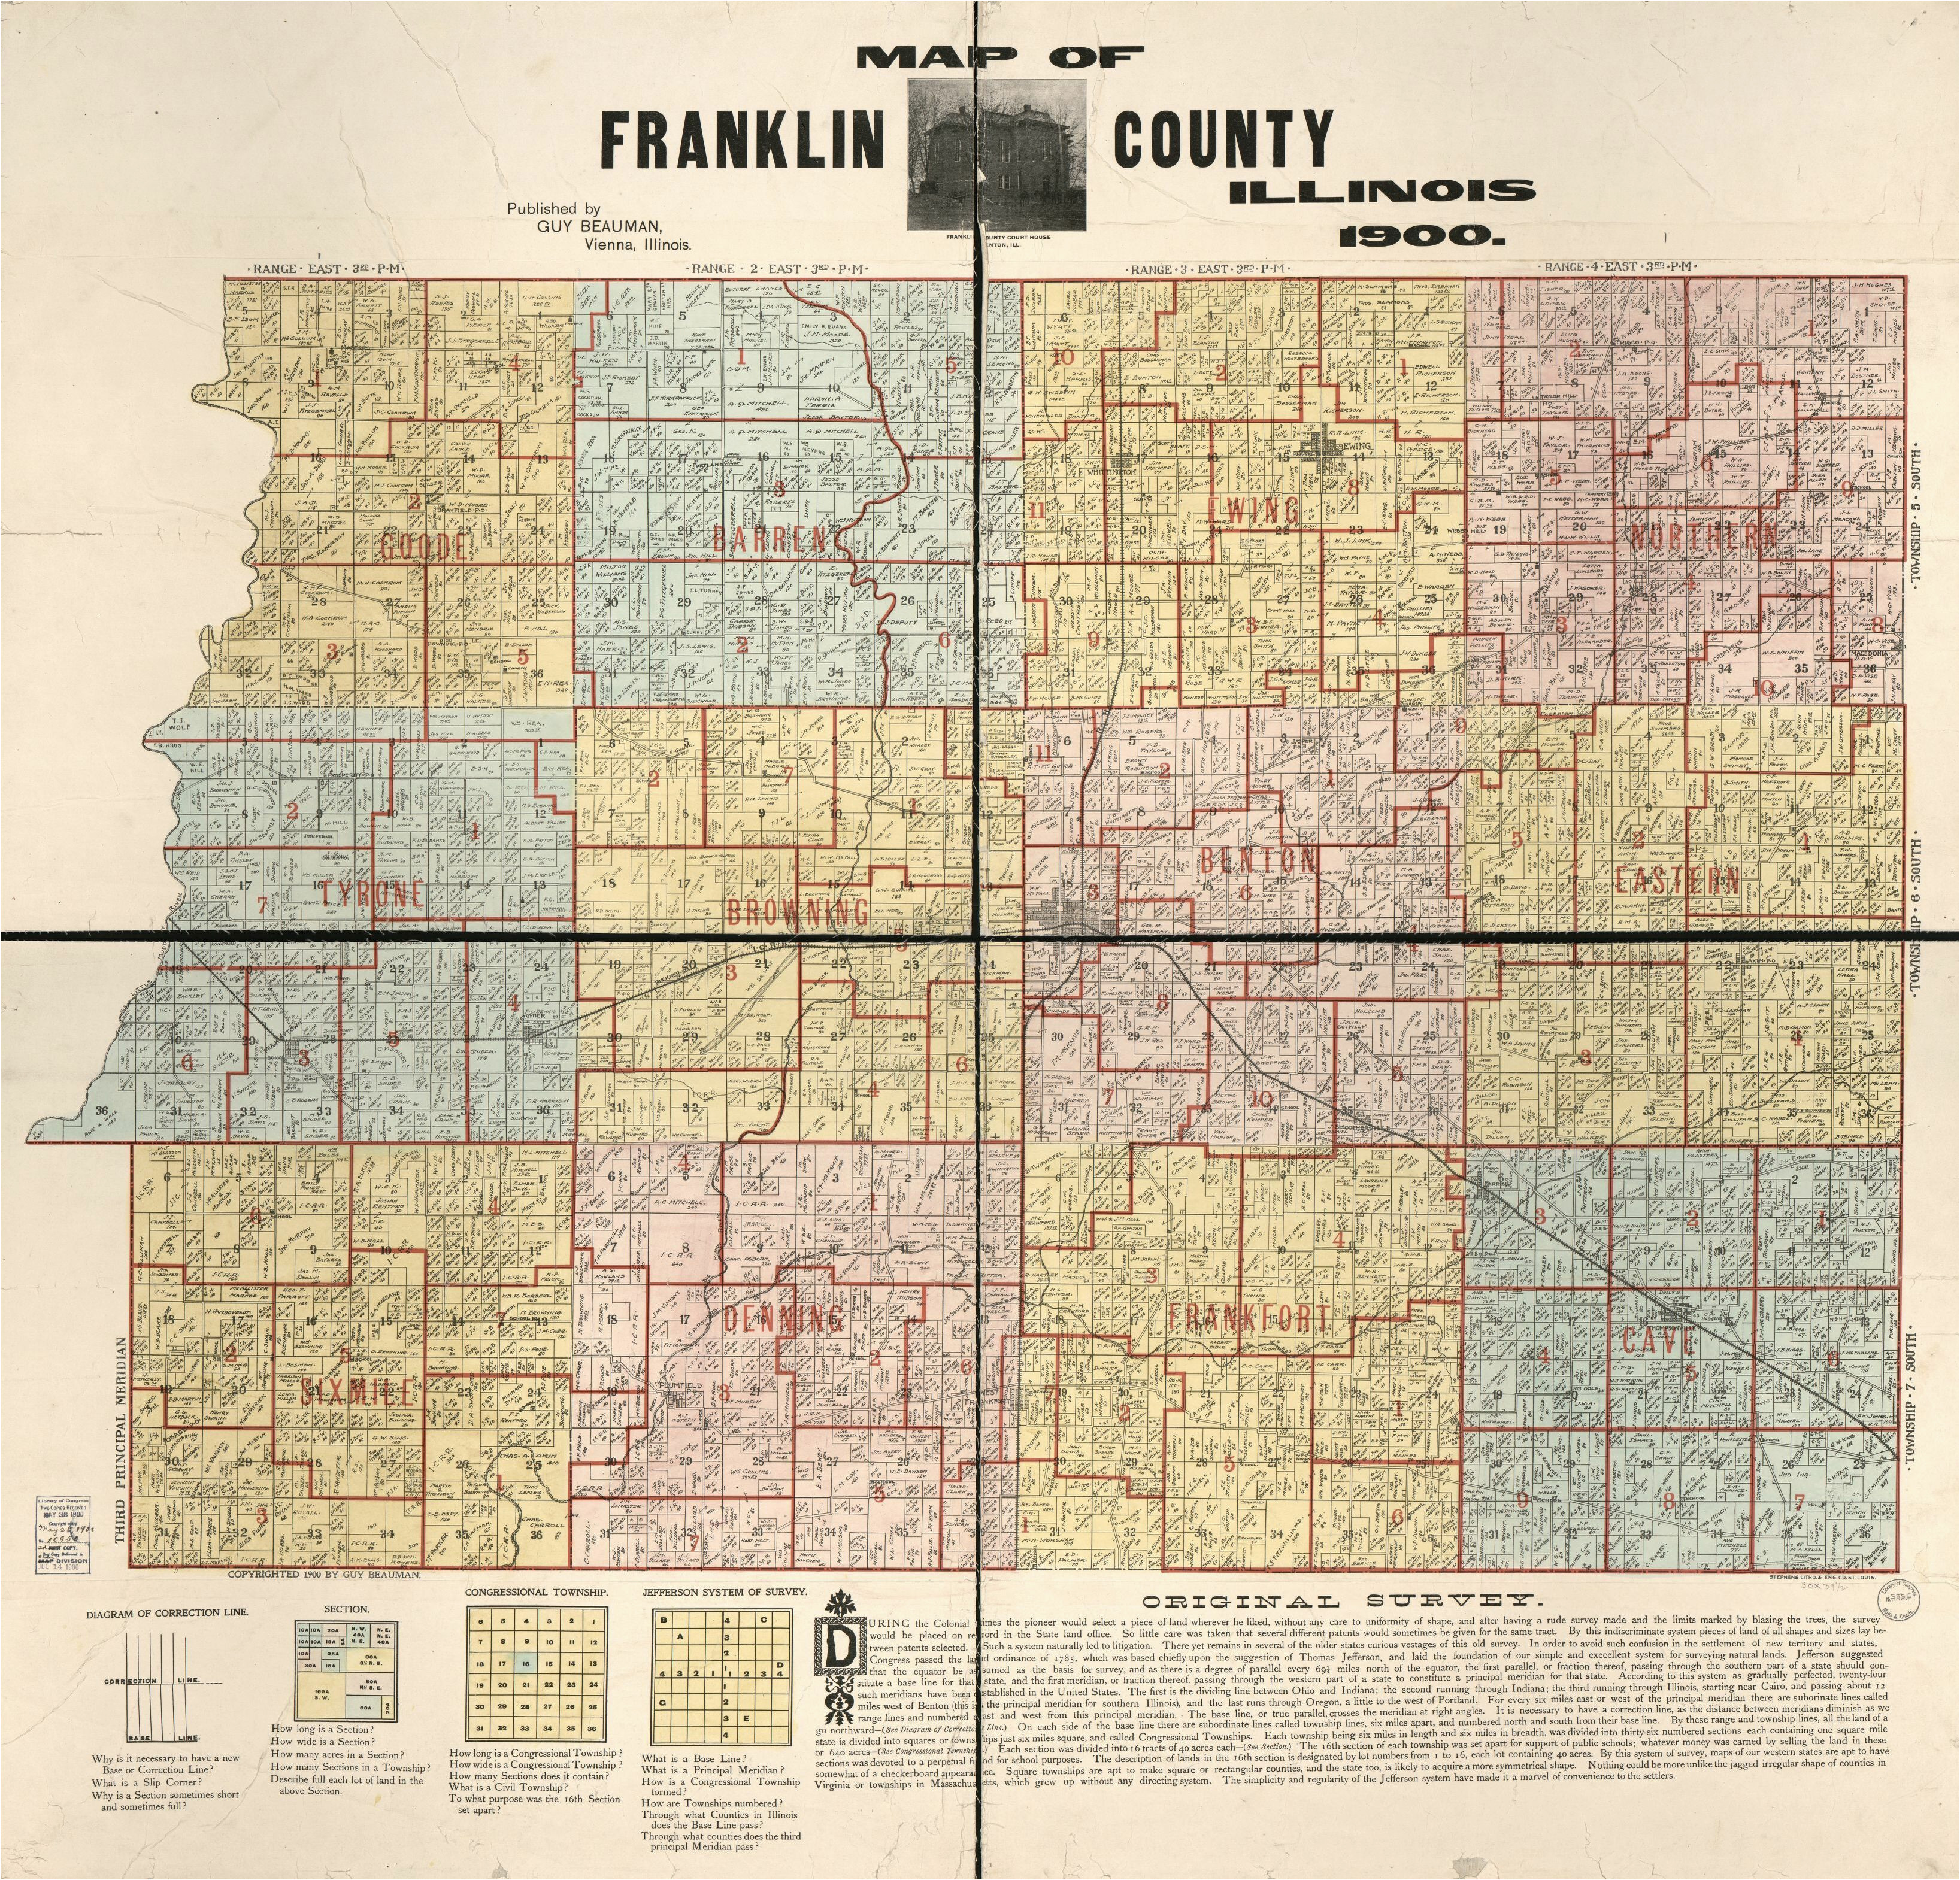 Franklin County Ohio township Map Map Franklin County Franklin County Library Of Congress